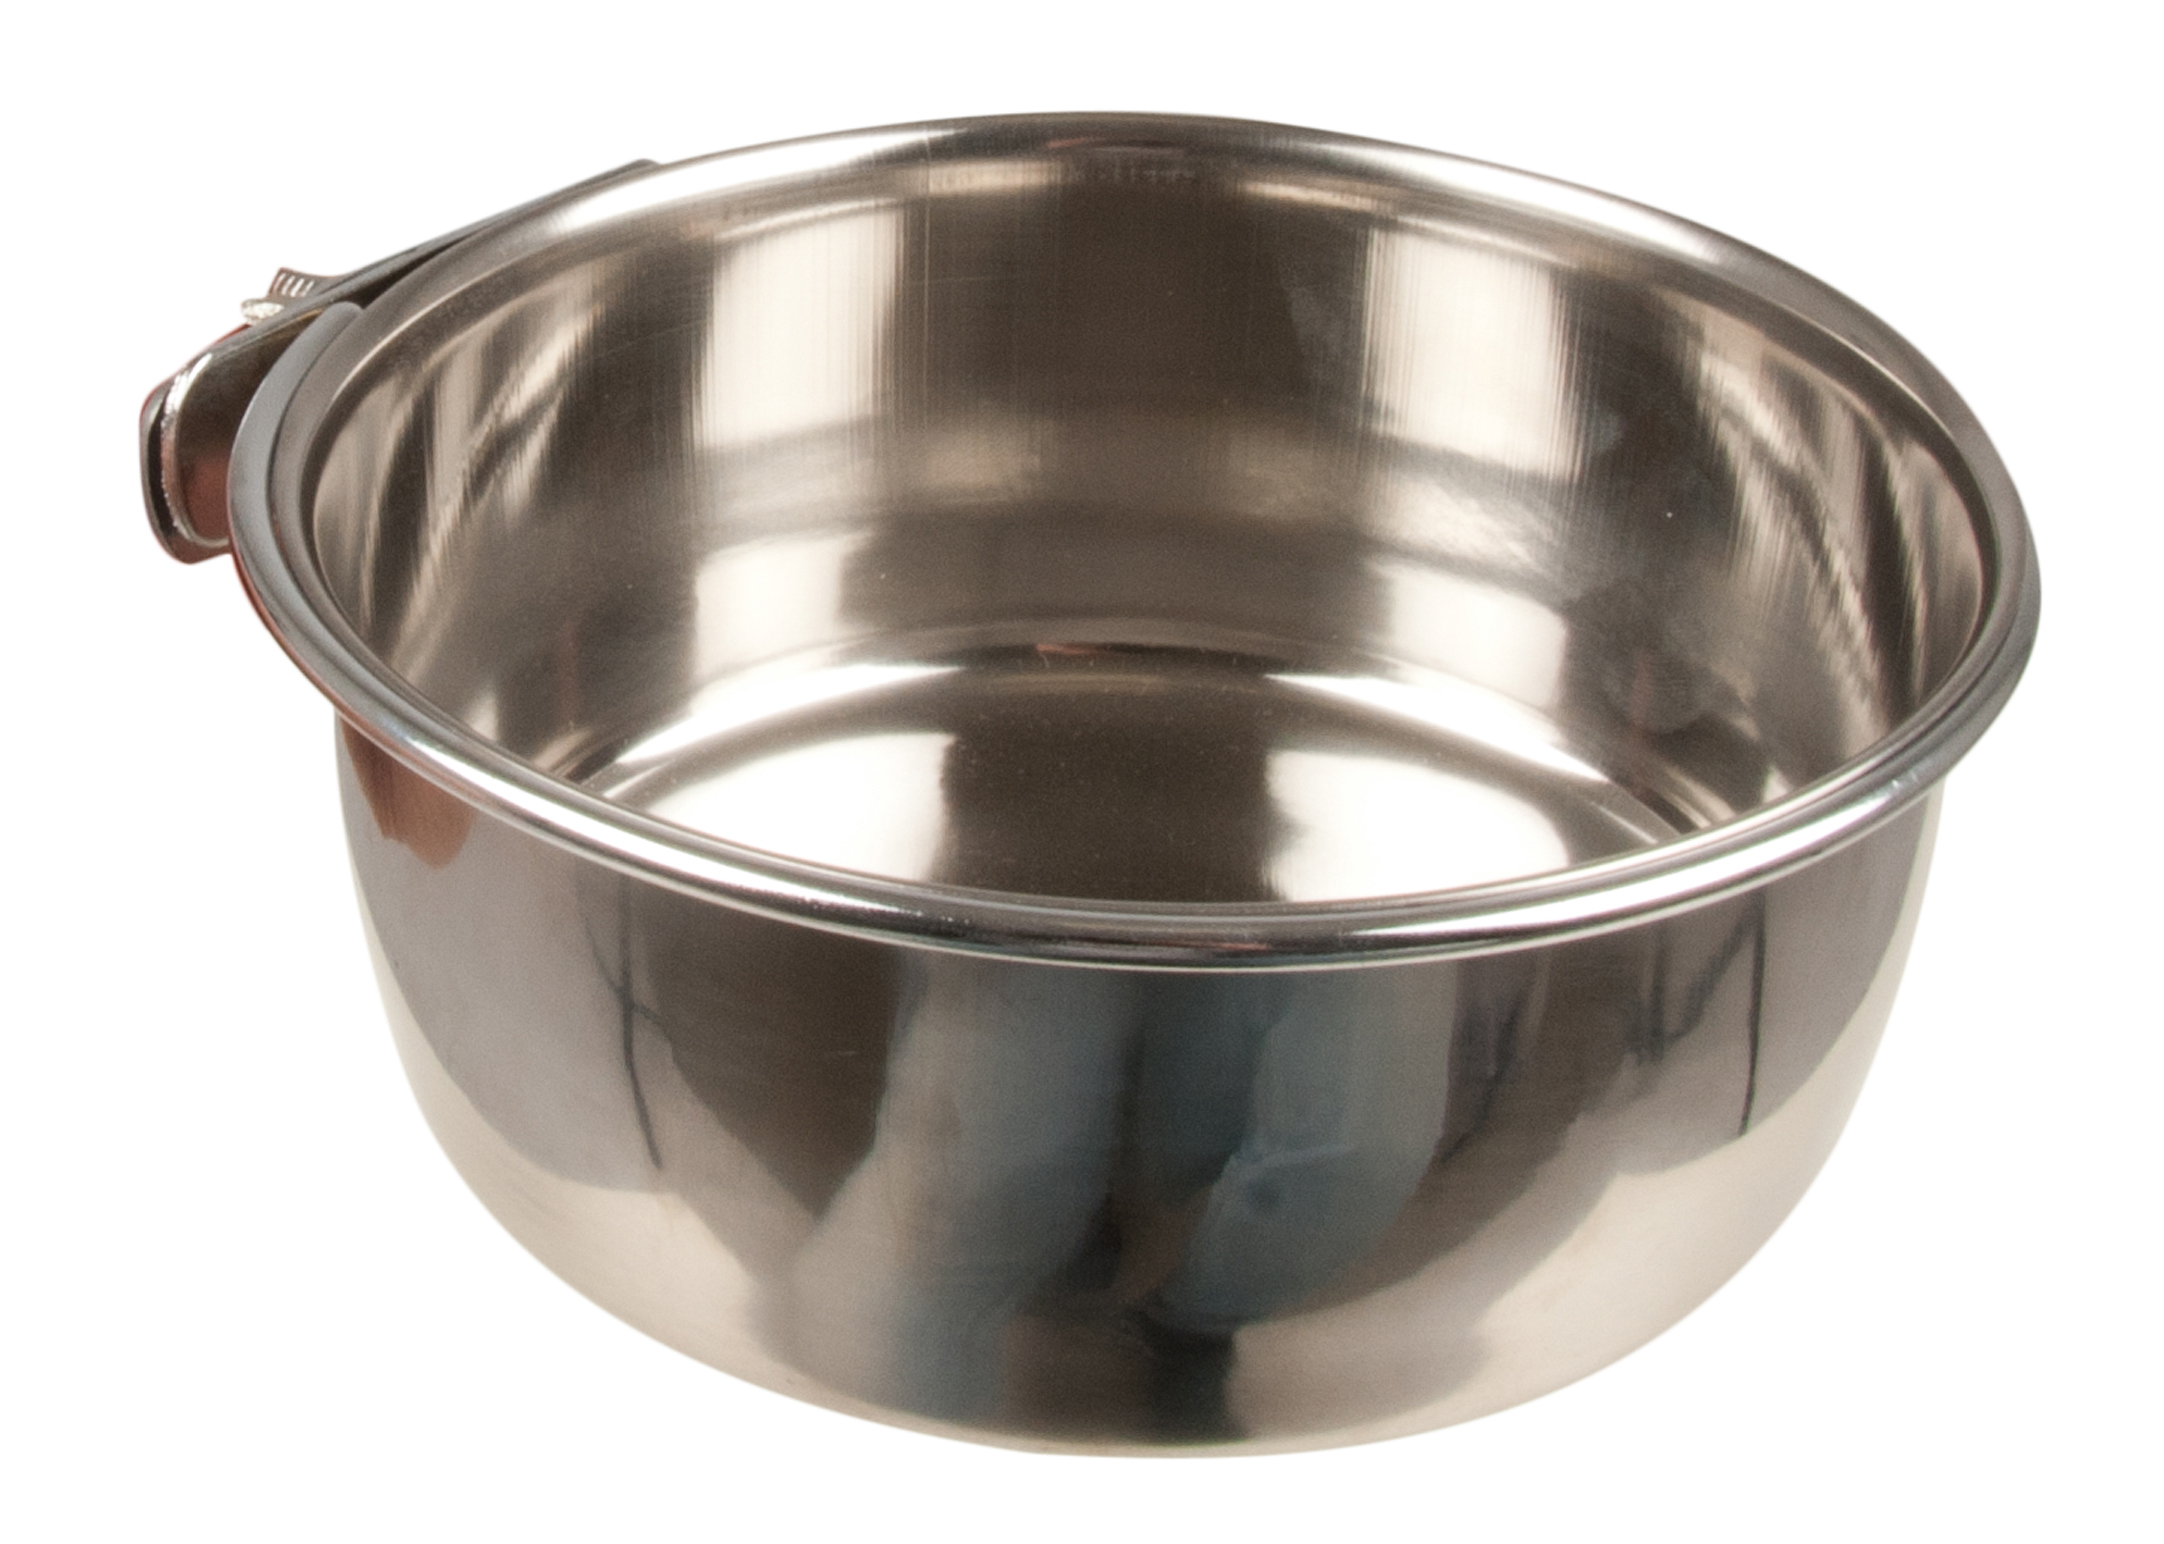 Show Tech Coop Cup Bolt-On Stainless Steel Feeding Bowl For Dogs